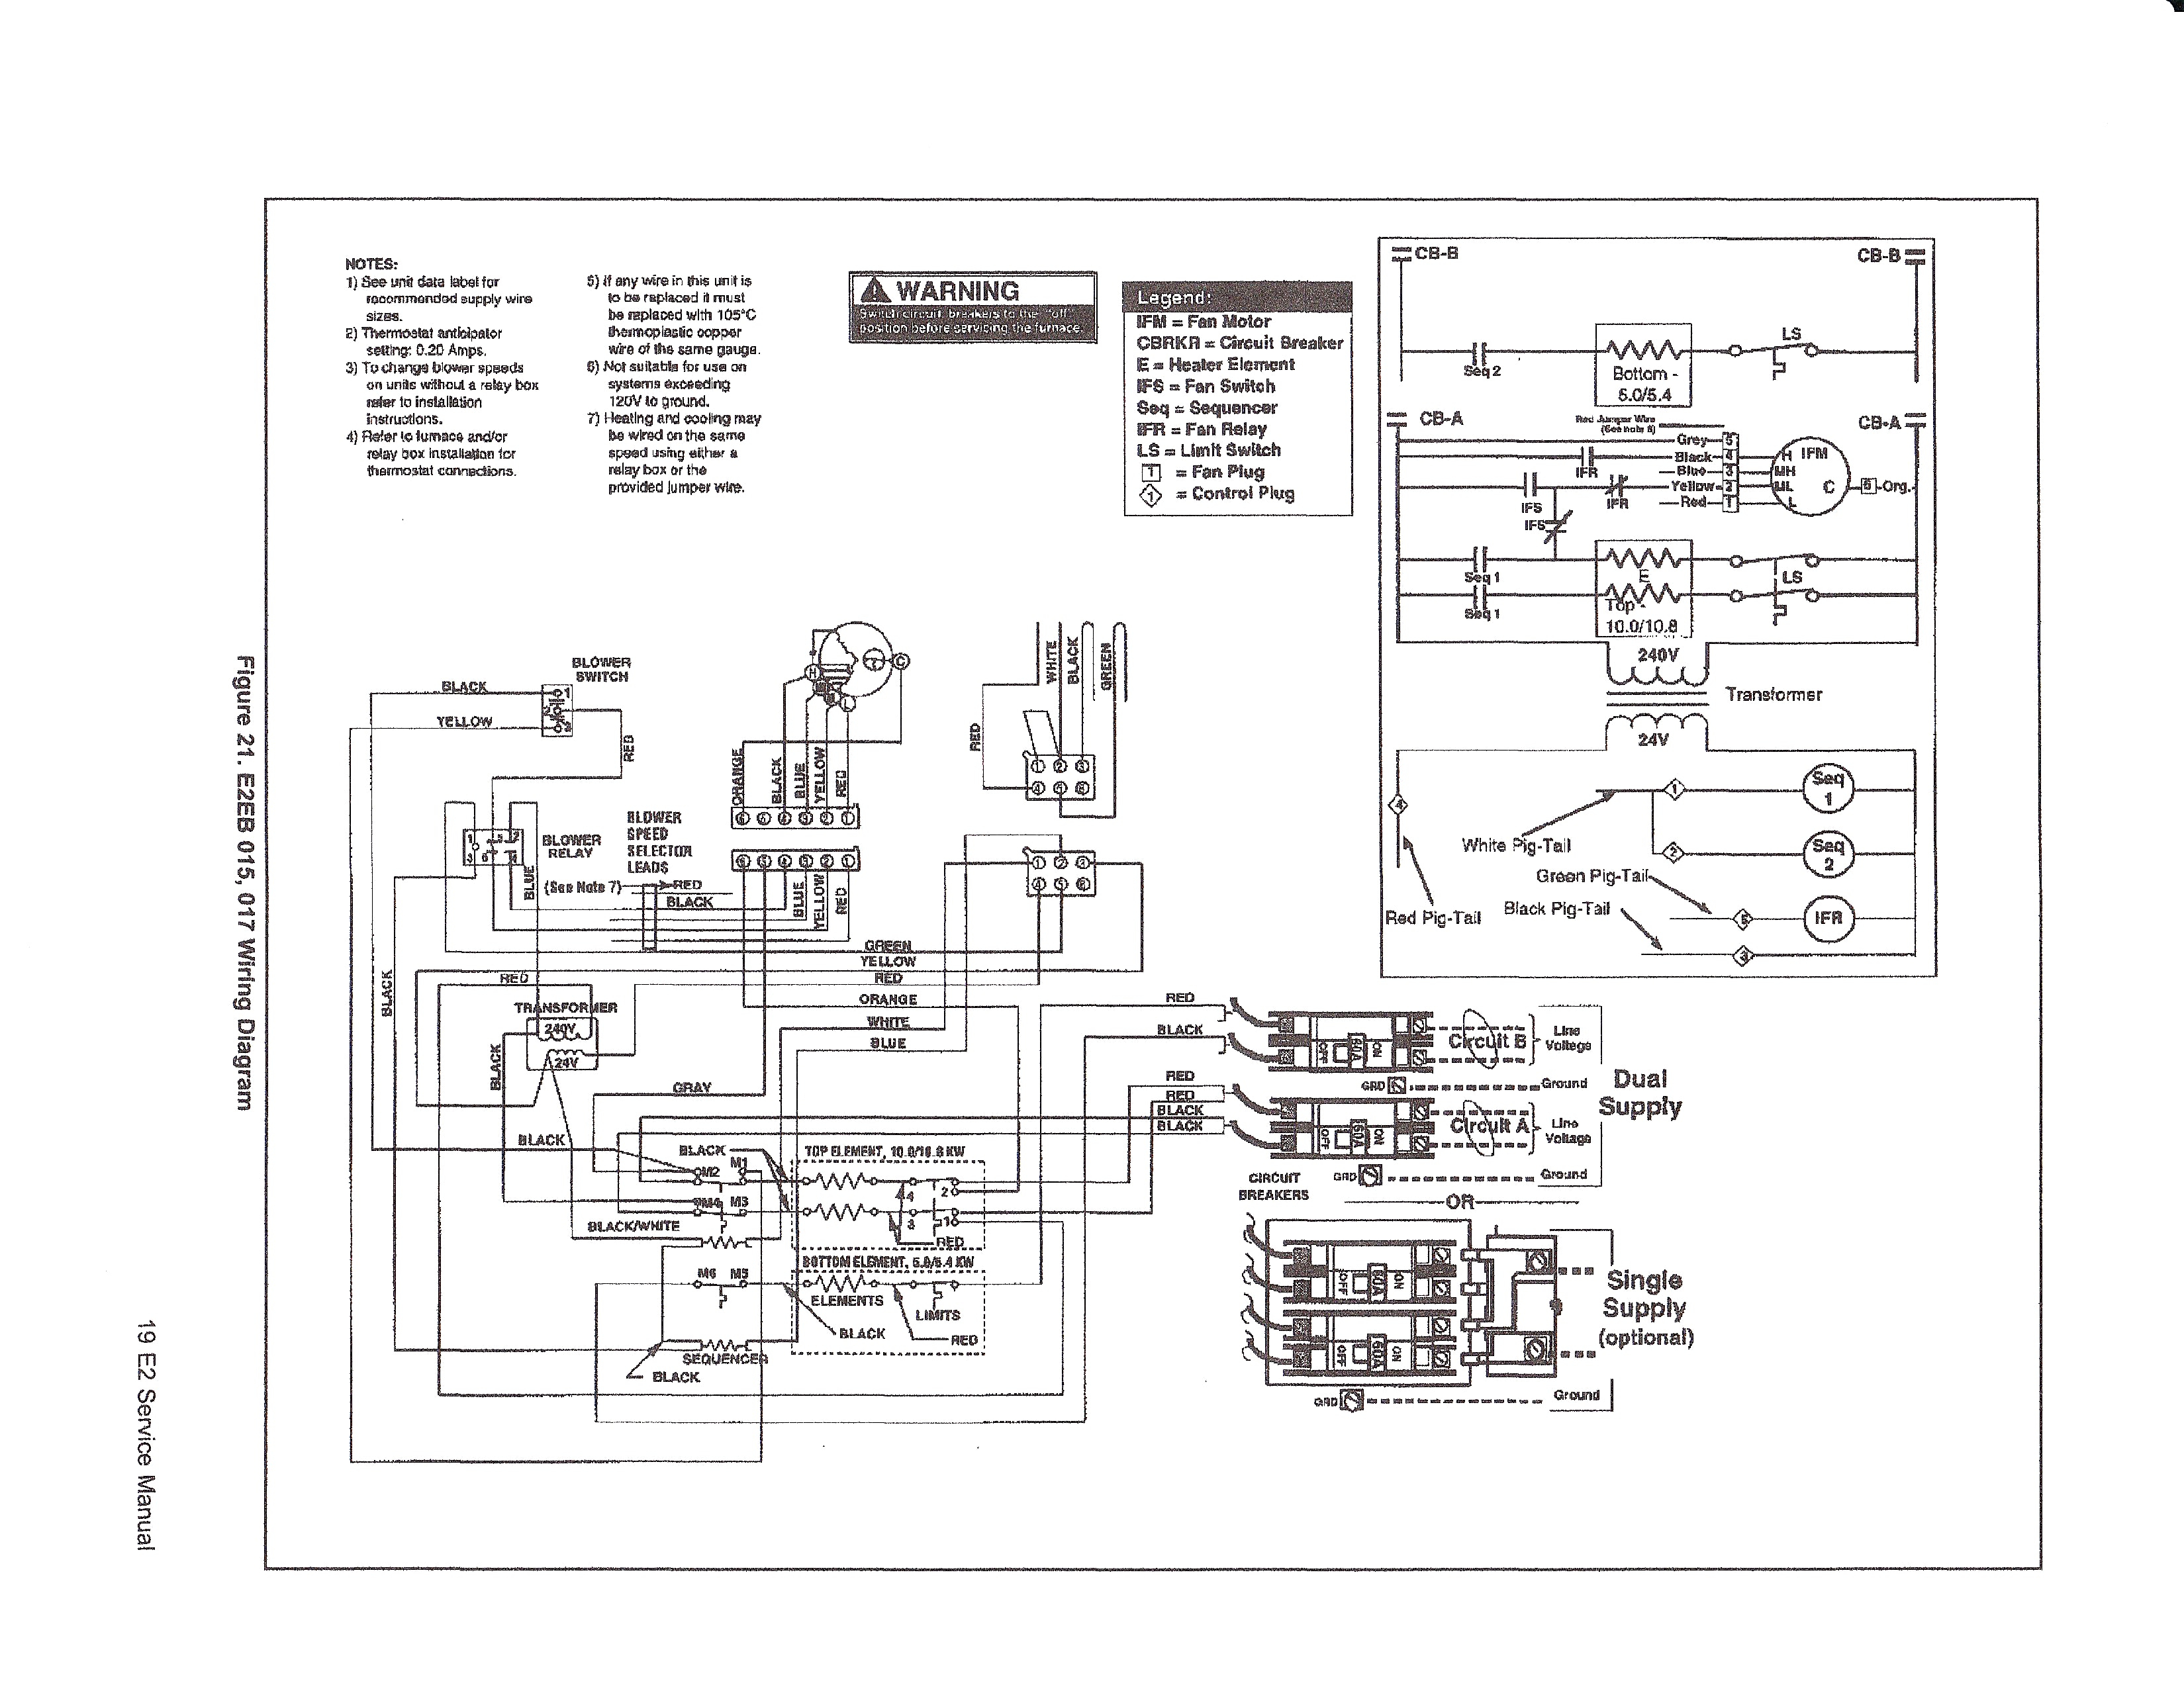 intertherm ac unit wiring diagram Download-Intertherm Electric Furnace Wiring Diagram Luxury Design Bright And 14-f